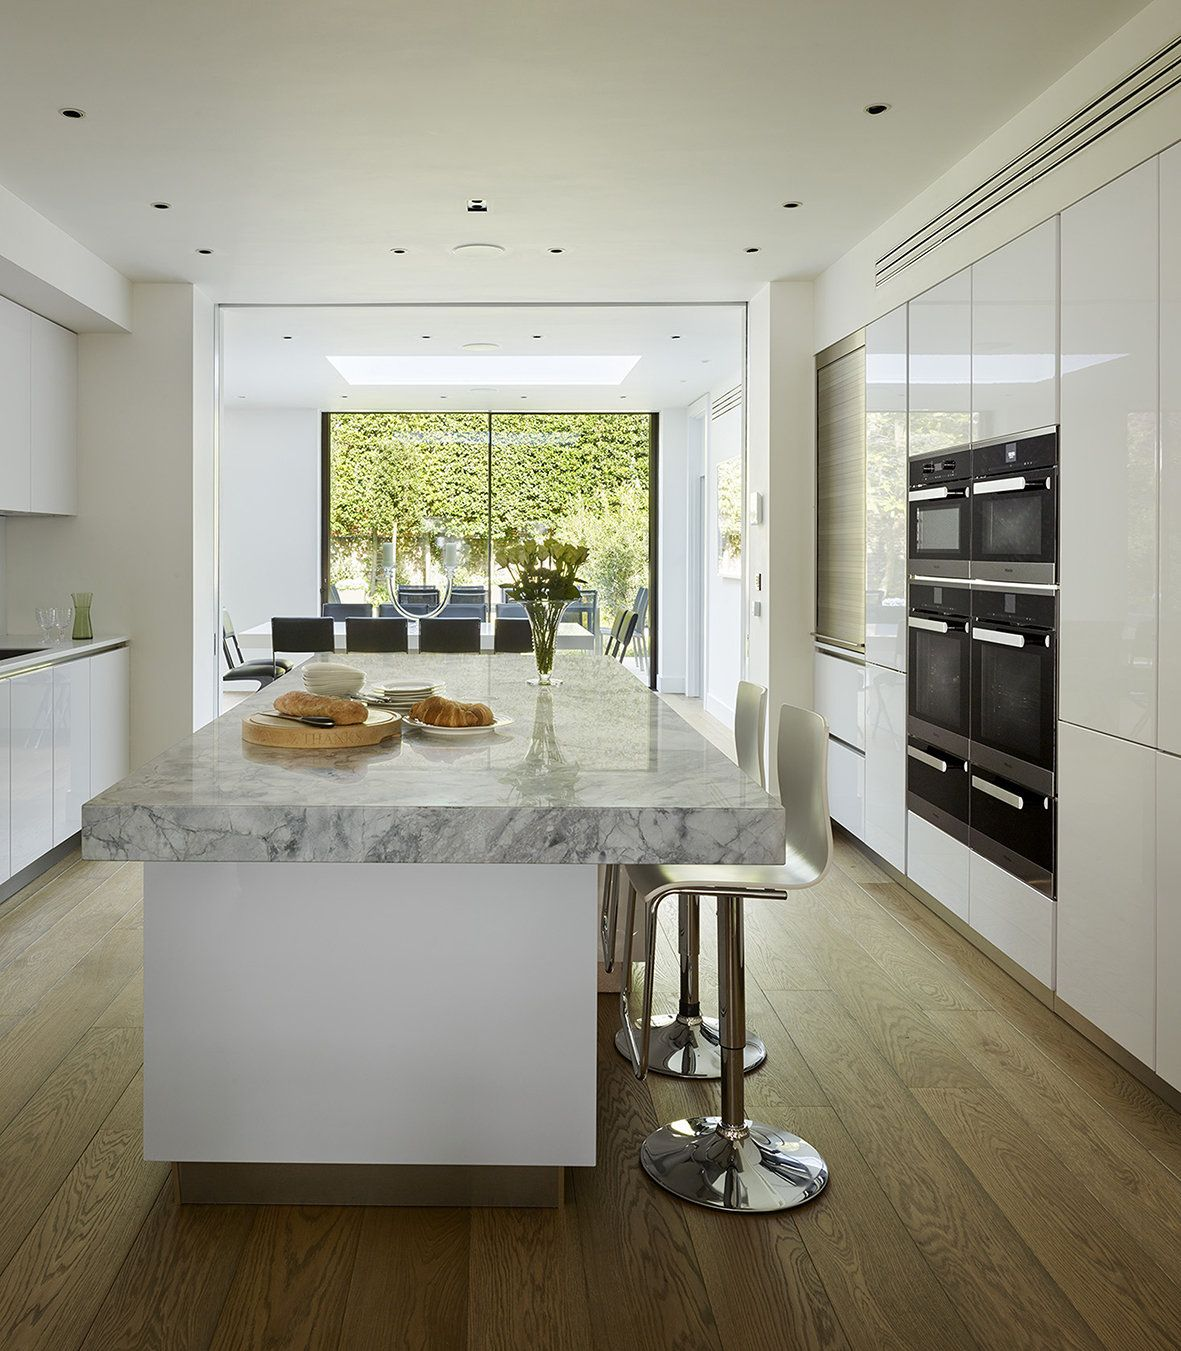 Family Kitchen Design Ideas For Cooking And Entertaining: This Elegant Family Kitchen Was Designed By Eve Turner Of